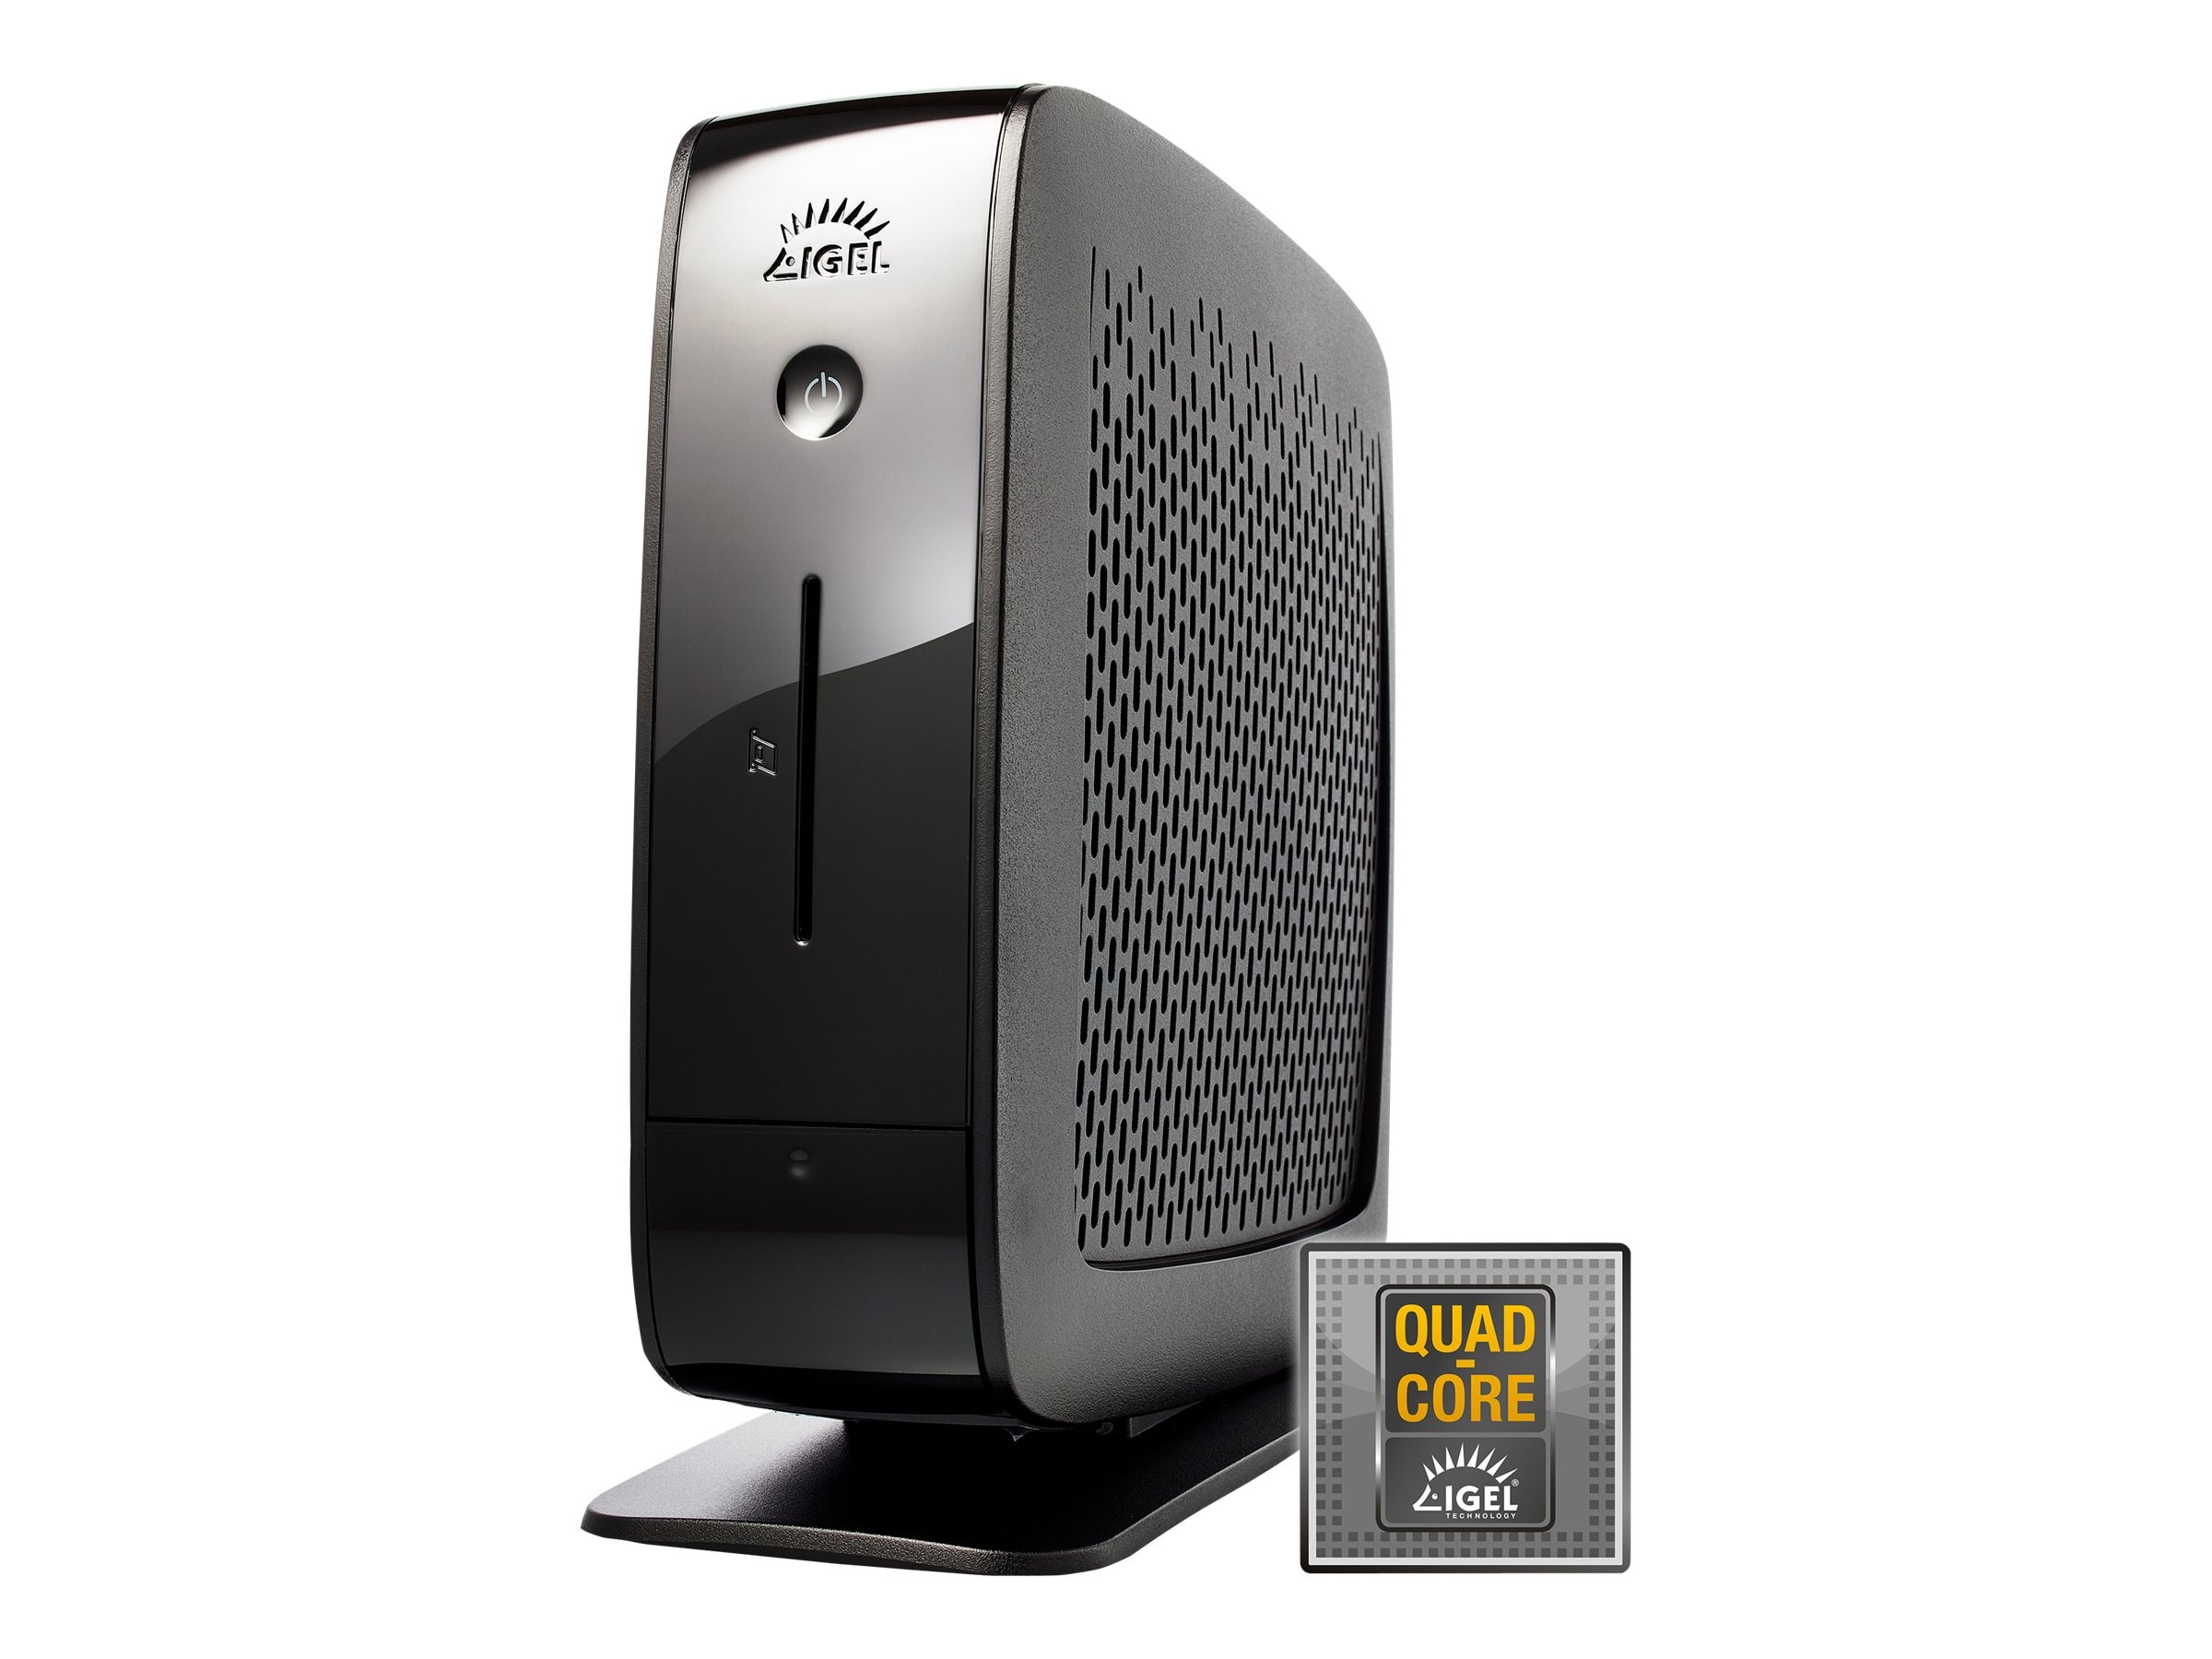 IGEL UD6 Universal Desktop Thin Client QC 2.0GHz 2GB RAM 4GB SSD WES7, 62-UD6-W751-34BL, 18368823, Thin Client Hardware